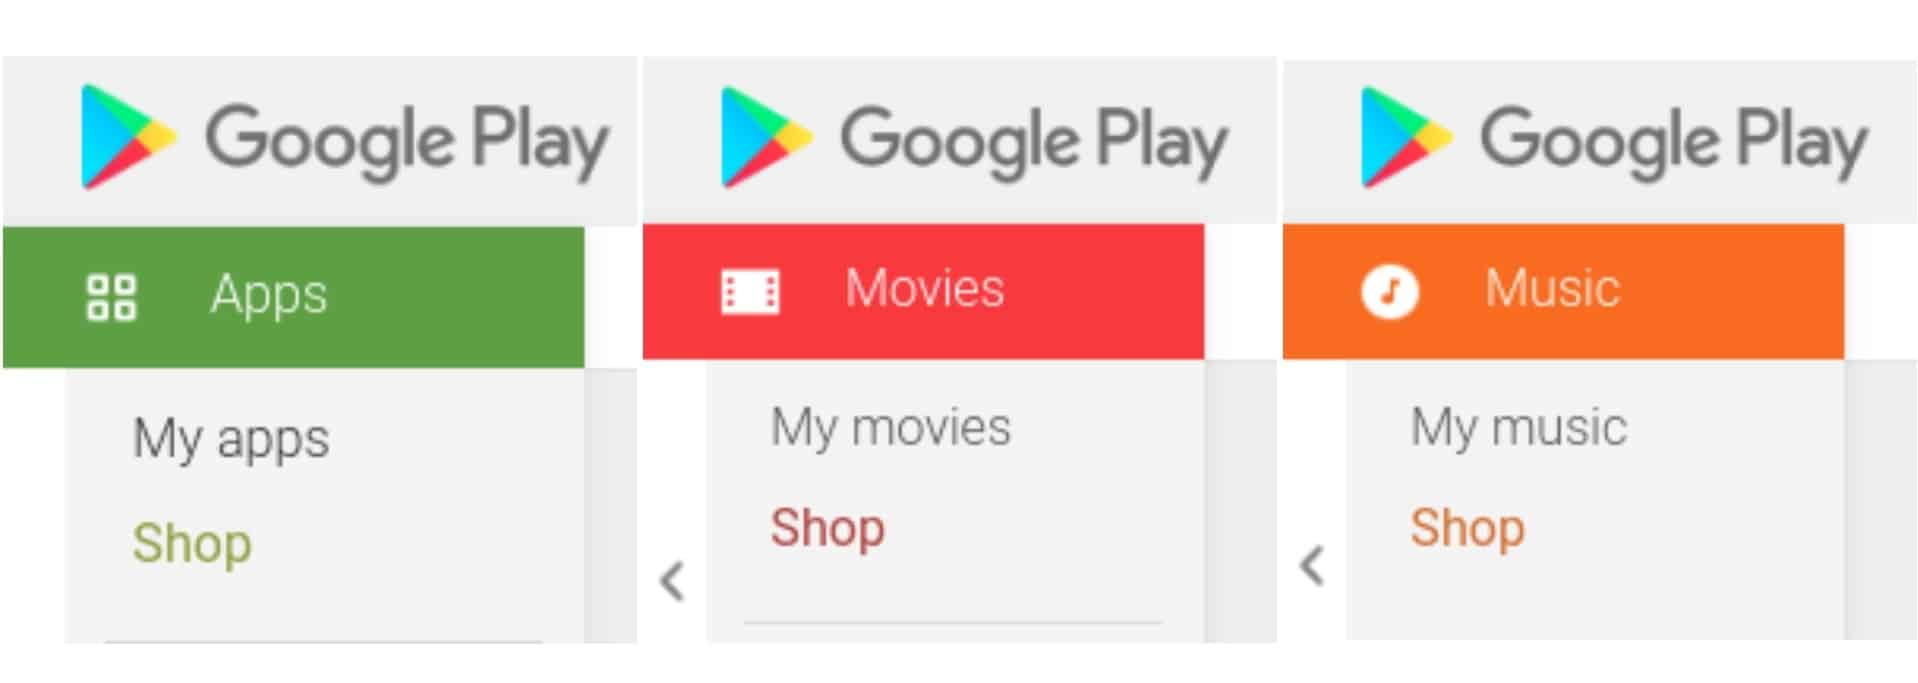 AH Google Play apps music and games